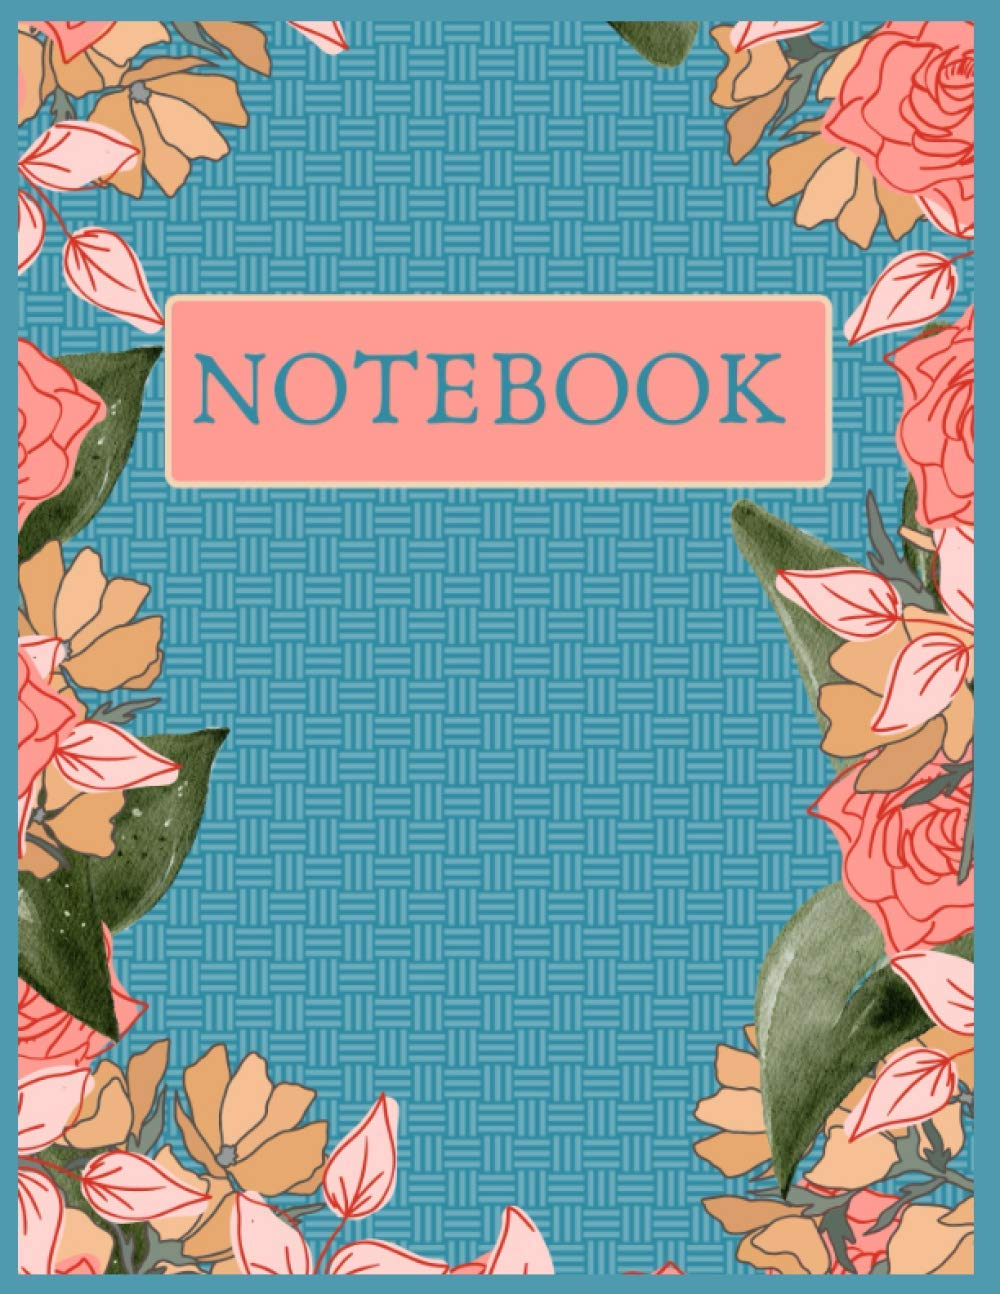 NOTEBOOK Blue Floral 8.5x11: Floral Notebook